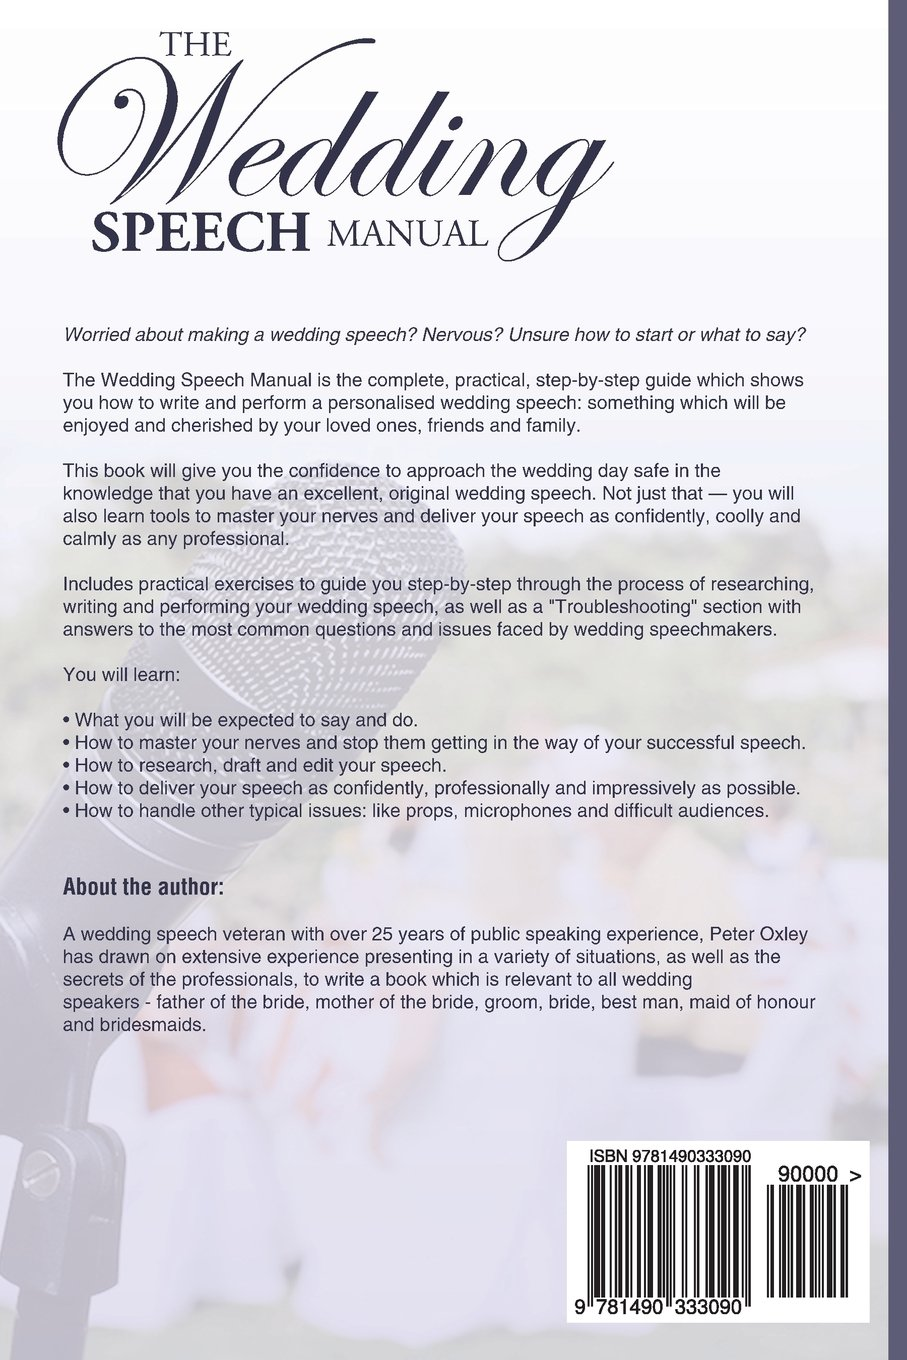 The Wedding Speech Manual Complete Guide To Preparing Writing And Performing Your Mr Peter Oxley 9781490333090 Amazon Books